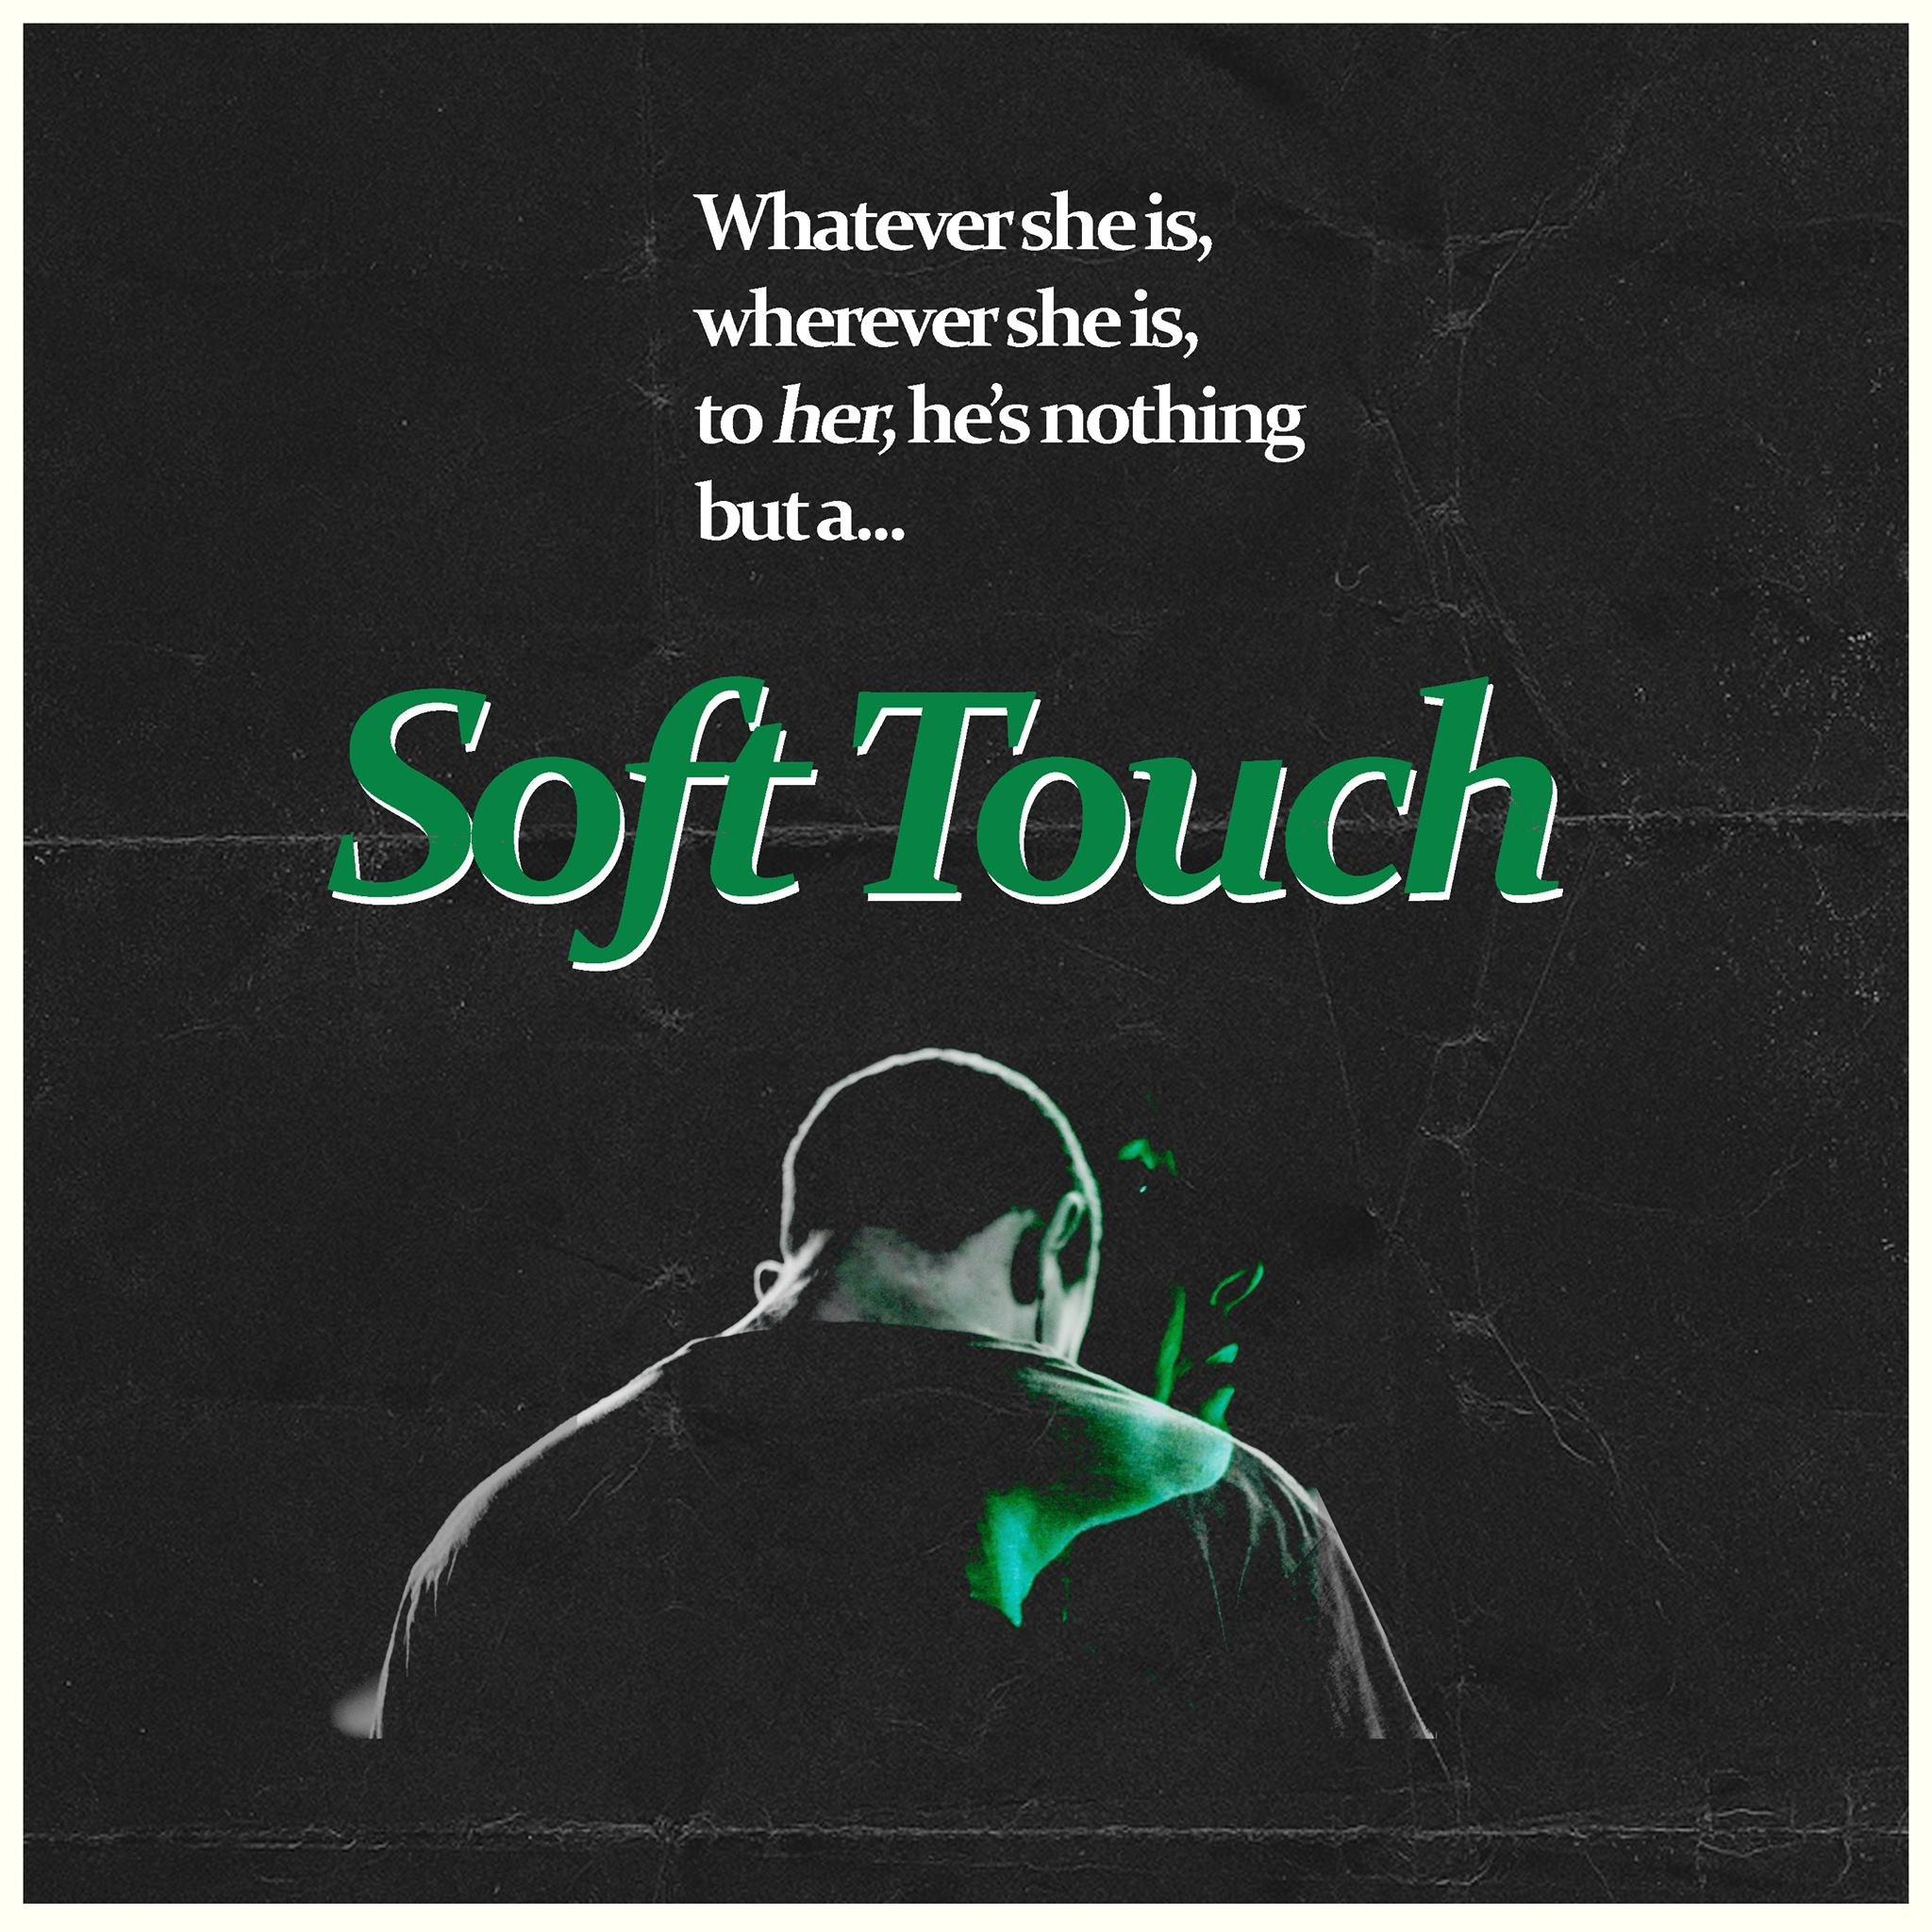 Soft Touch - Zach Lacosse - Short film (Upcoming)Audio & Dialoge Editing/Mixing